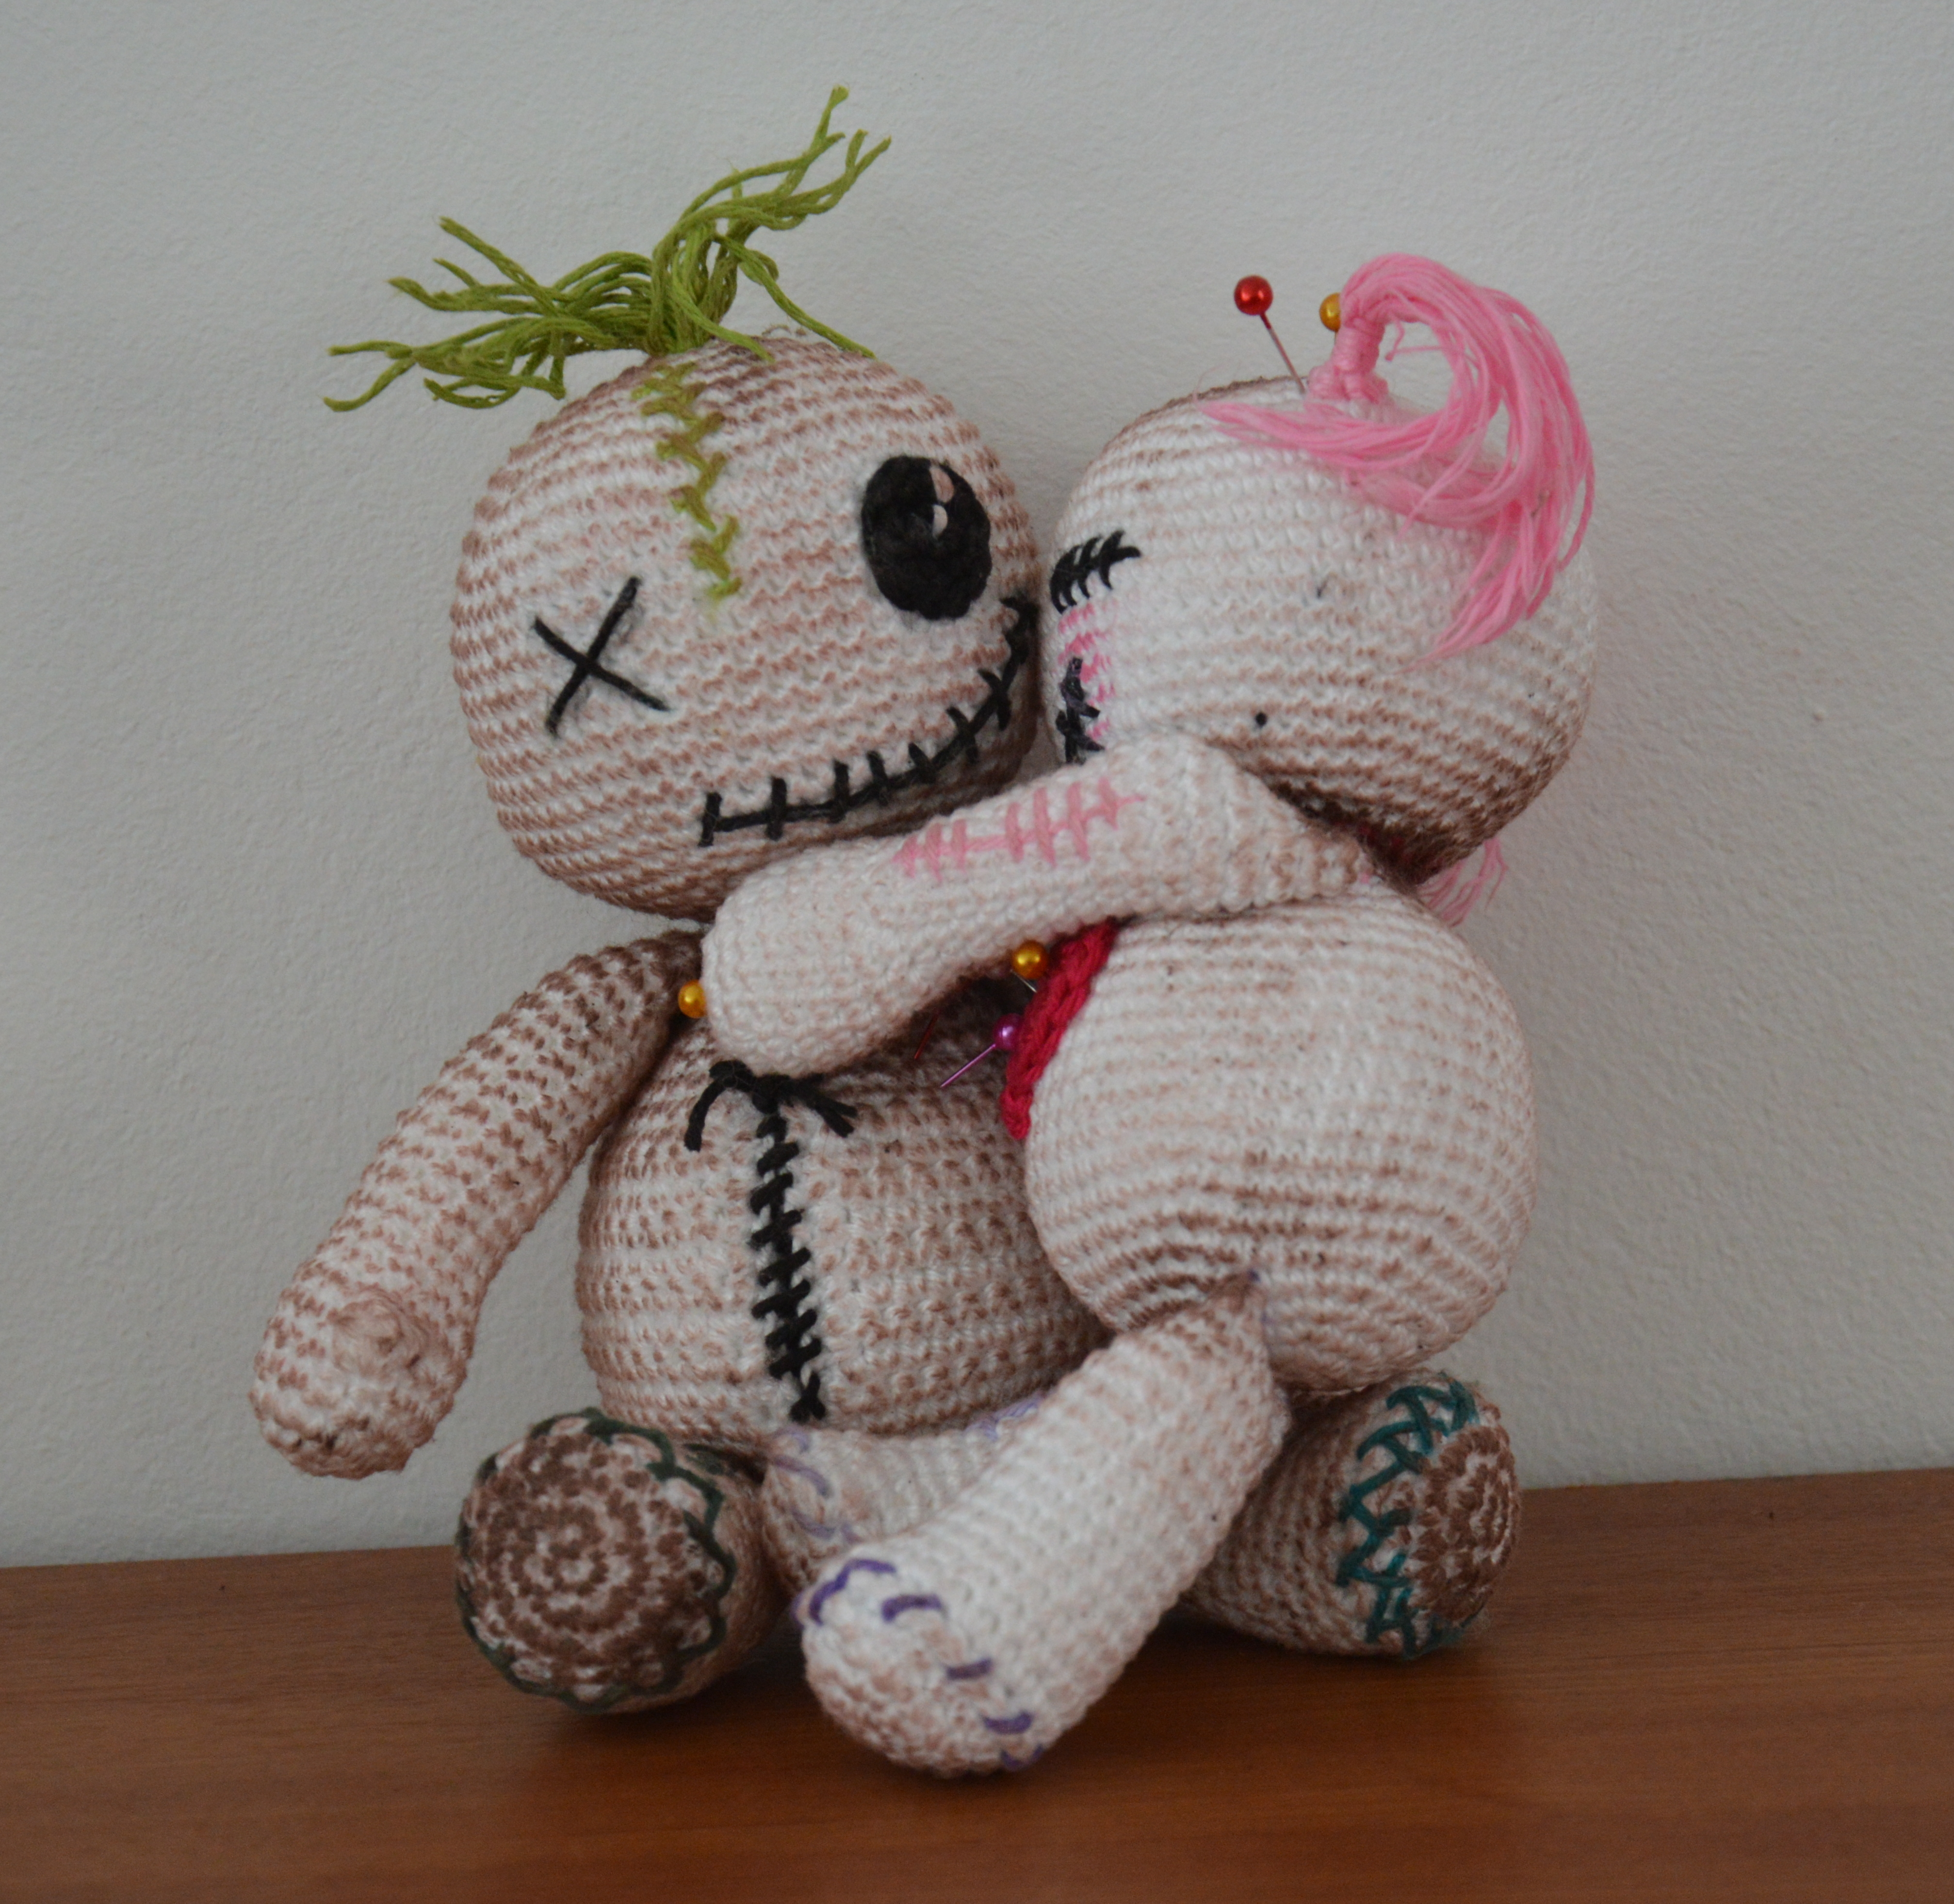 Amigurumi: Voodoo Doll (Pin Cushion) : 7 Steps (with Pictures ...   3924x4028